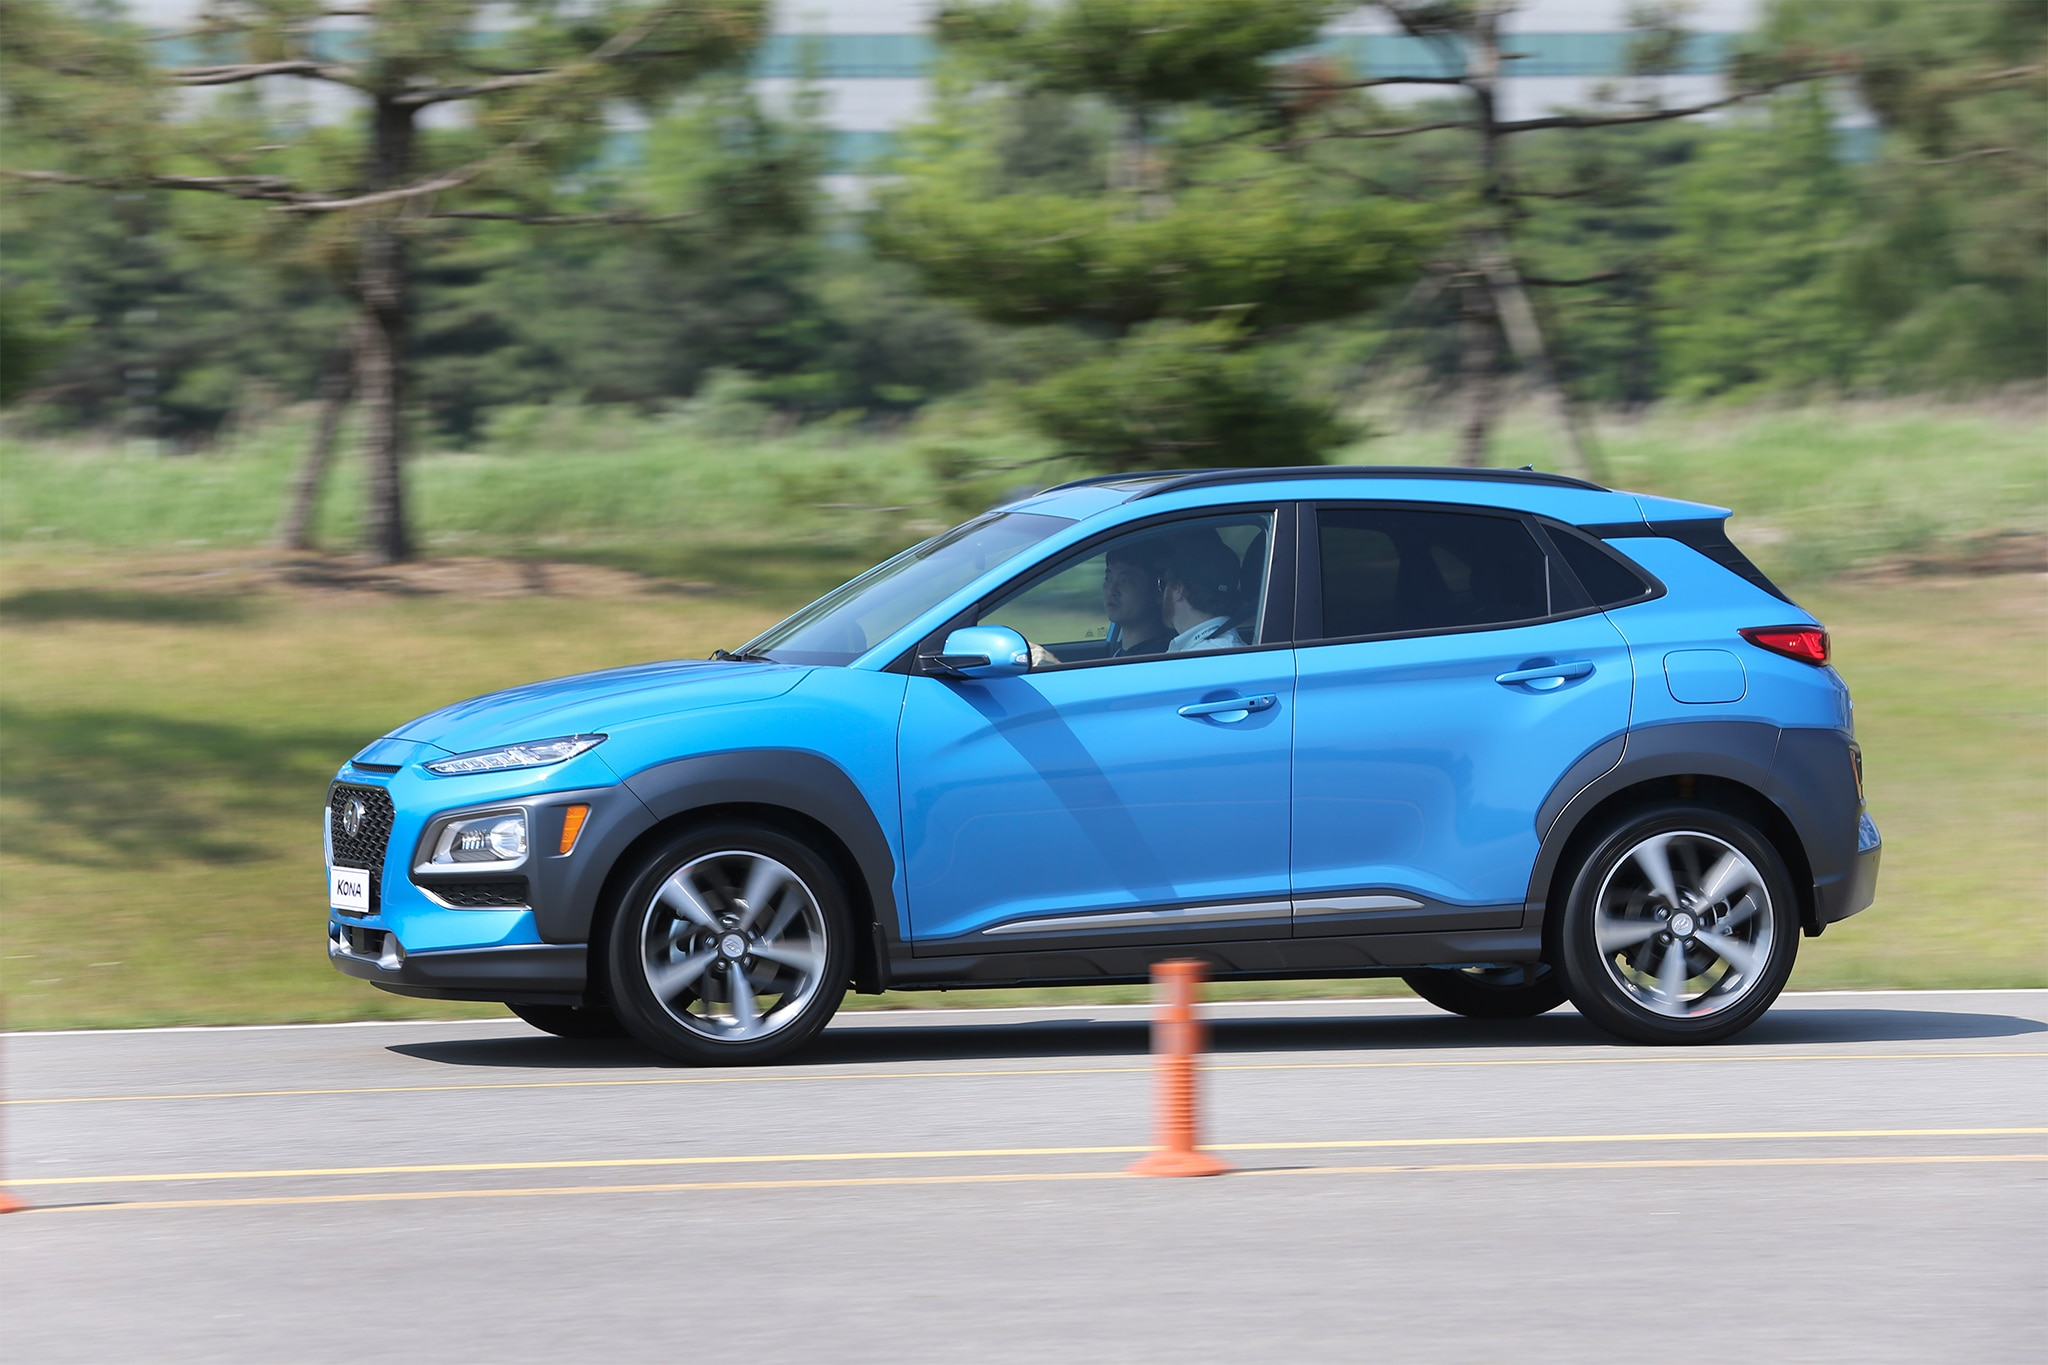 Five Essential Design Details Of The 2018 Hyundai Kona